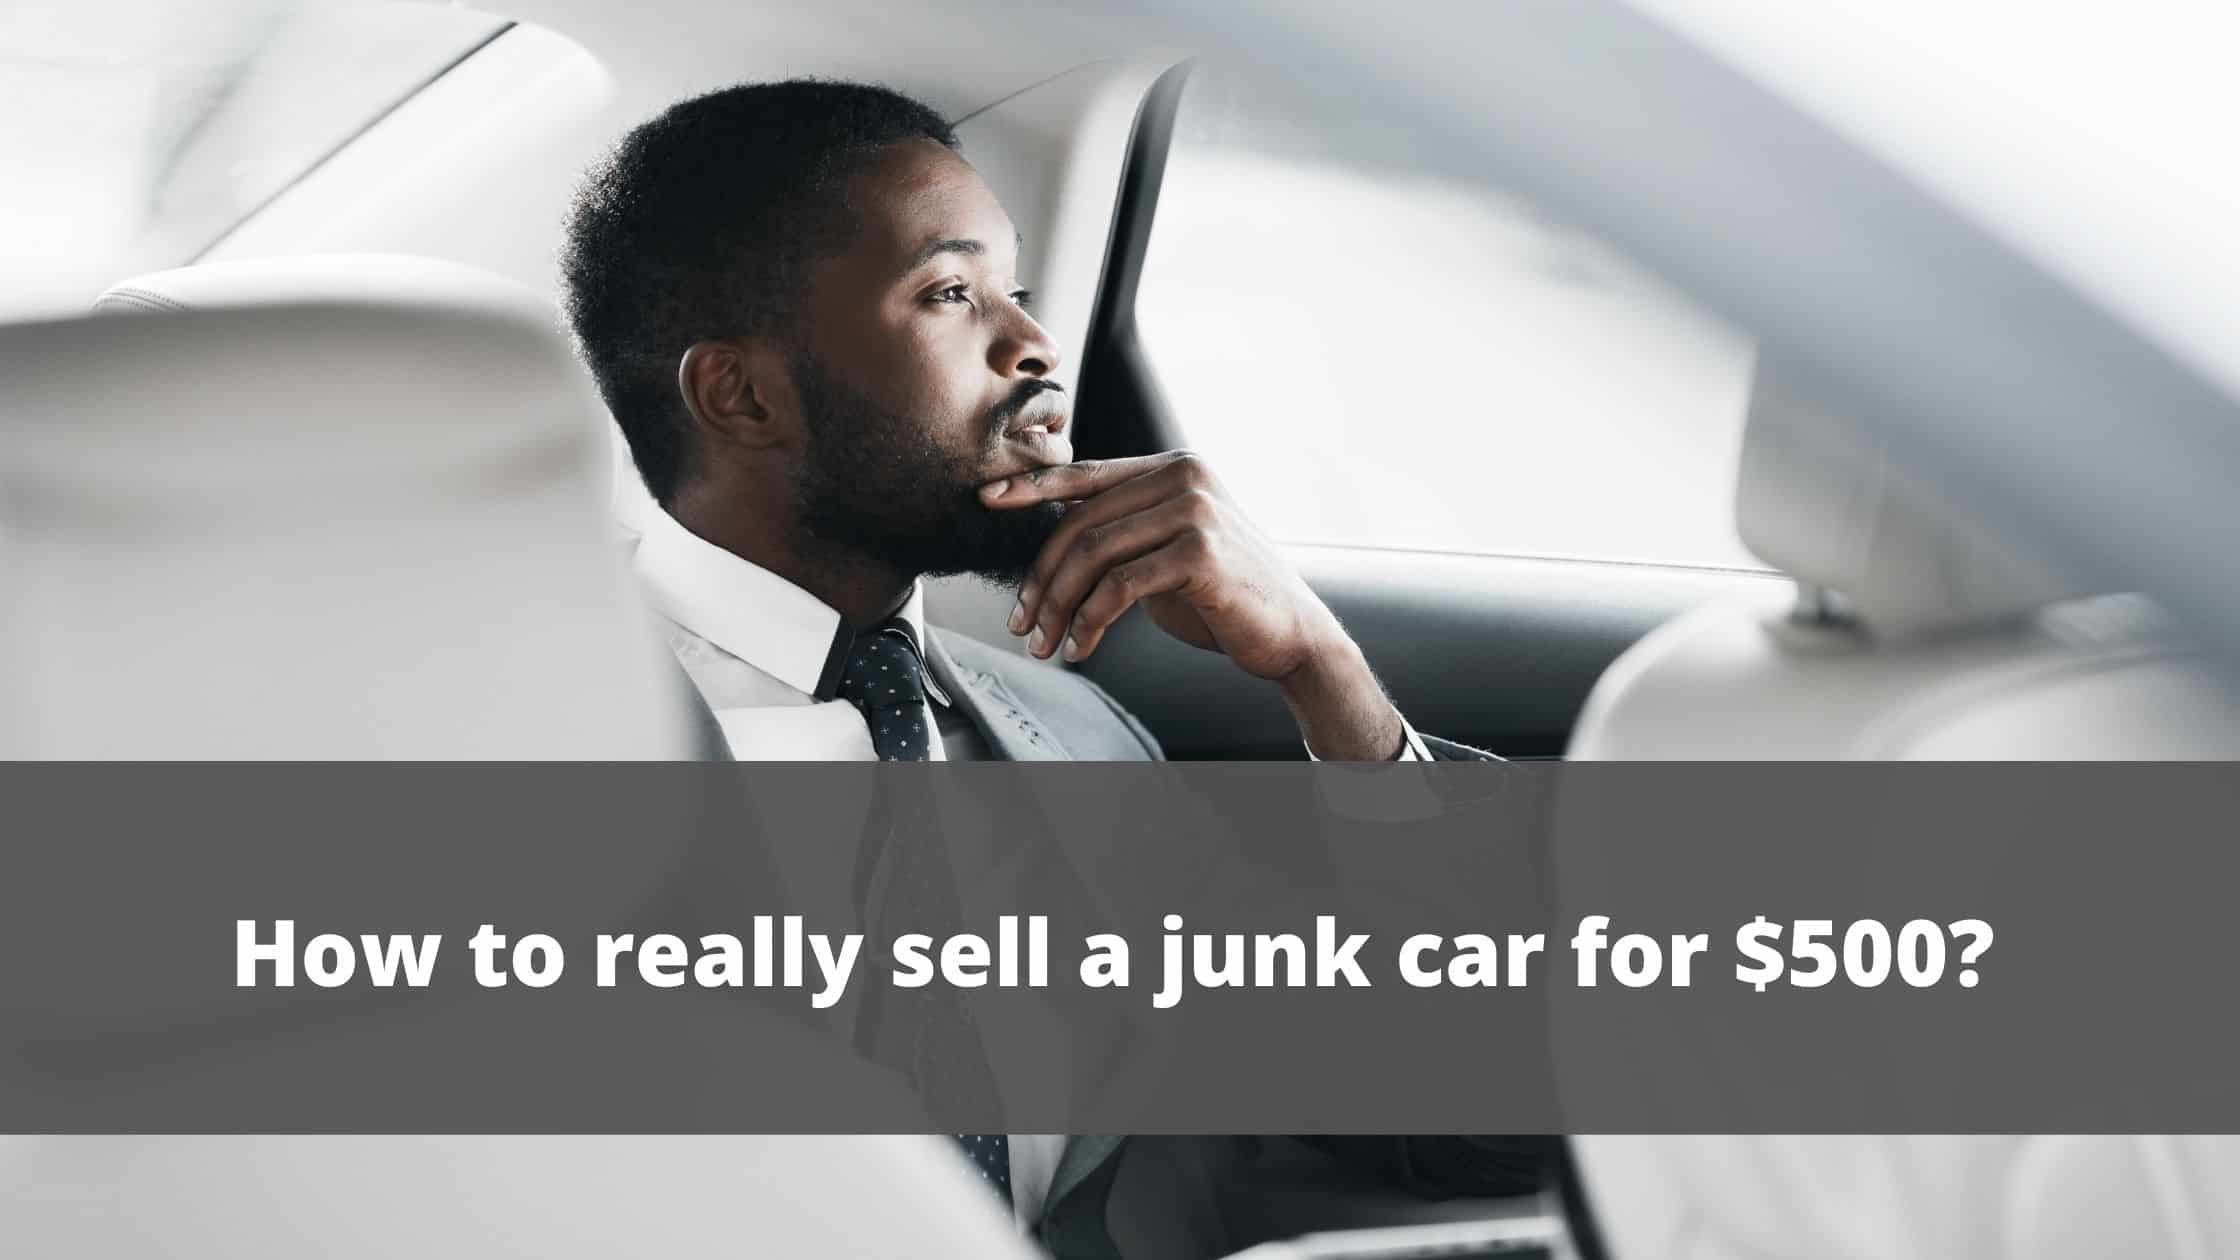 Tips to Sell a Junk Car for $500